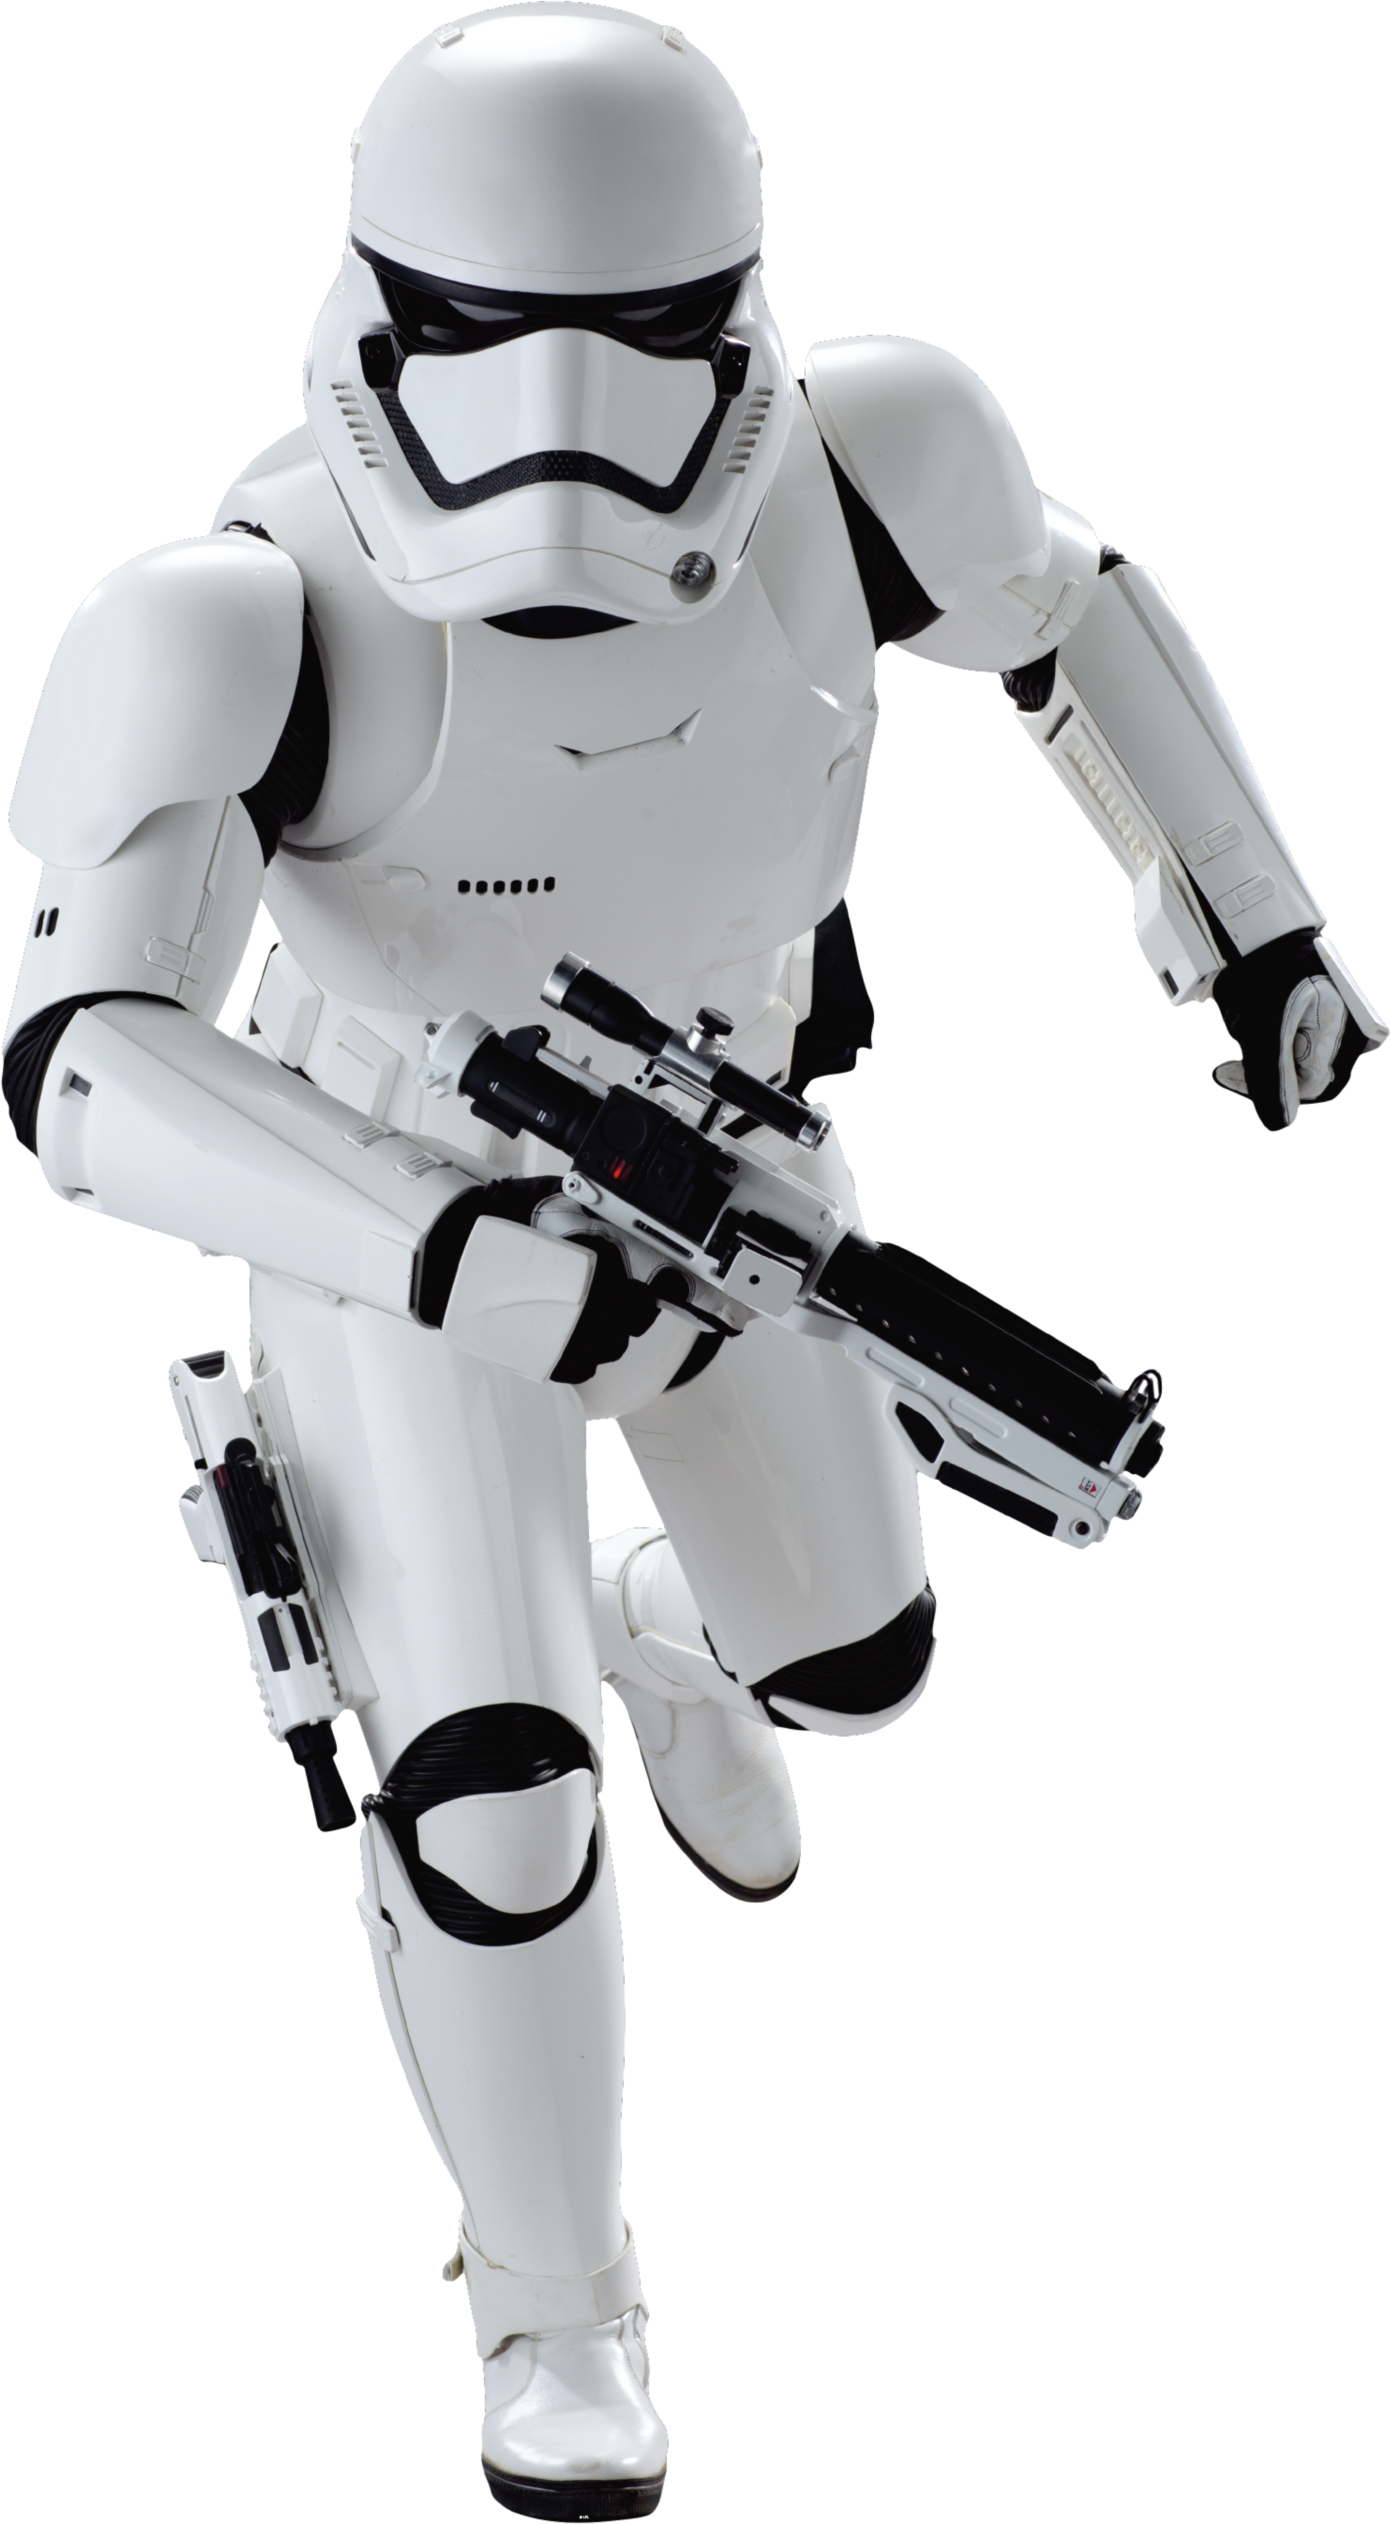 Star wars characters png. The greatest andreanisme co